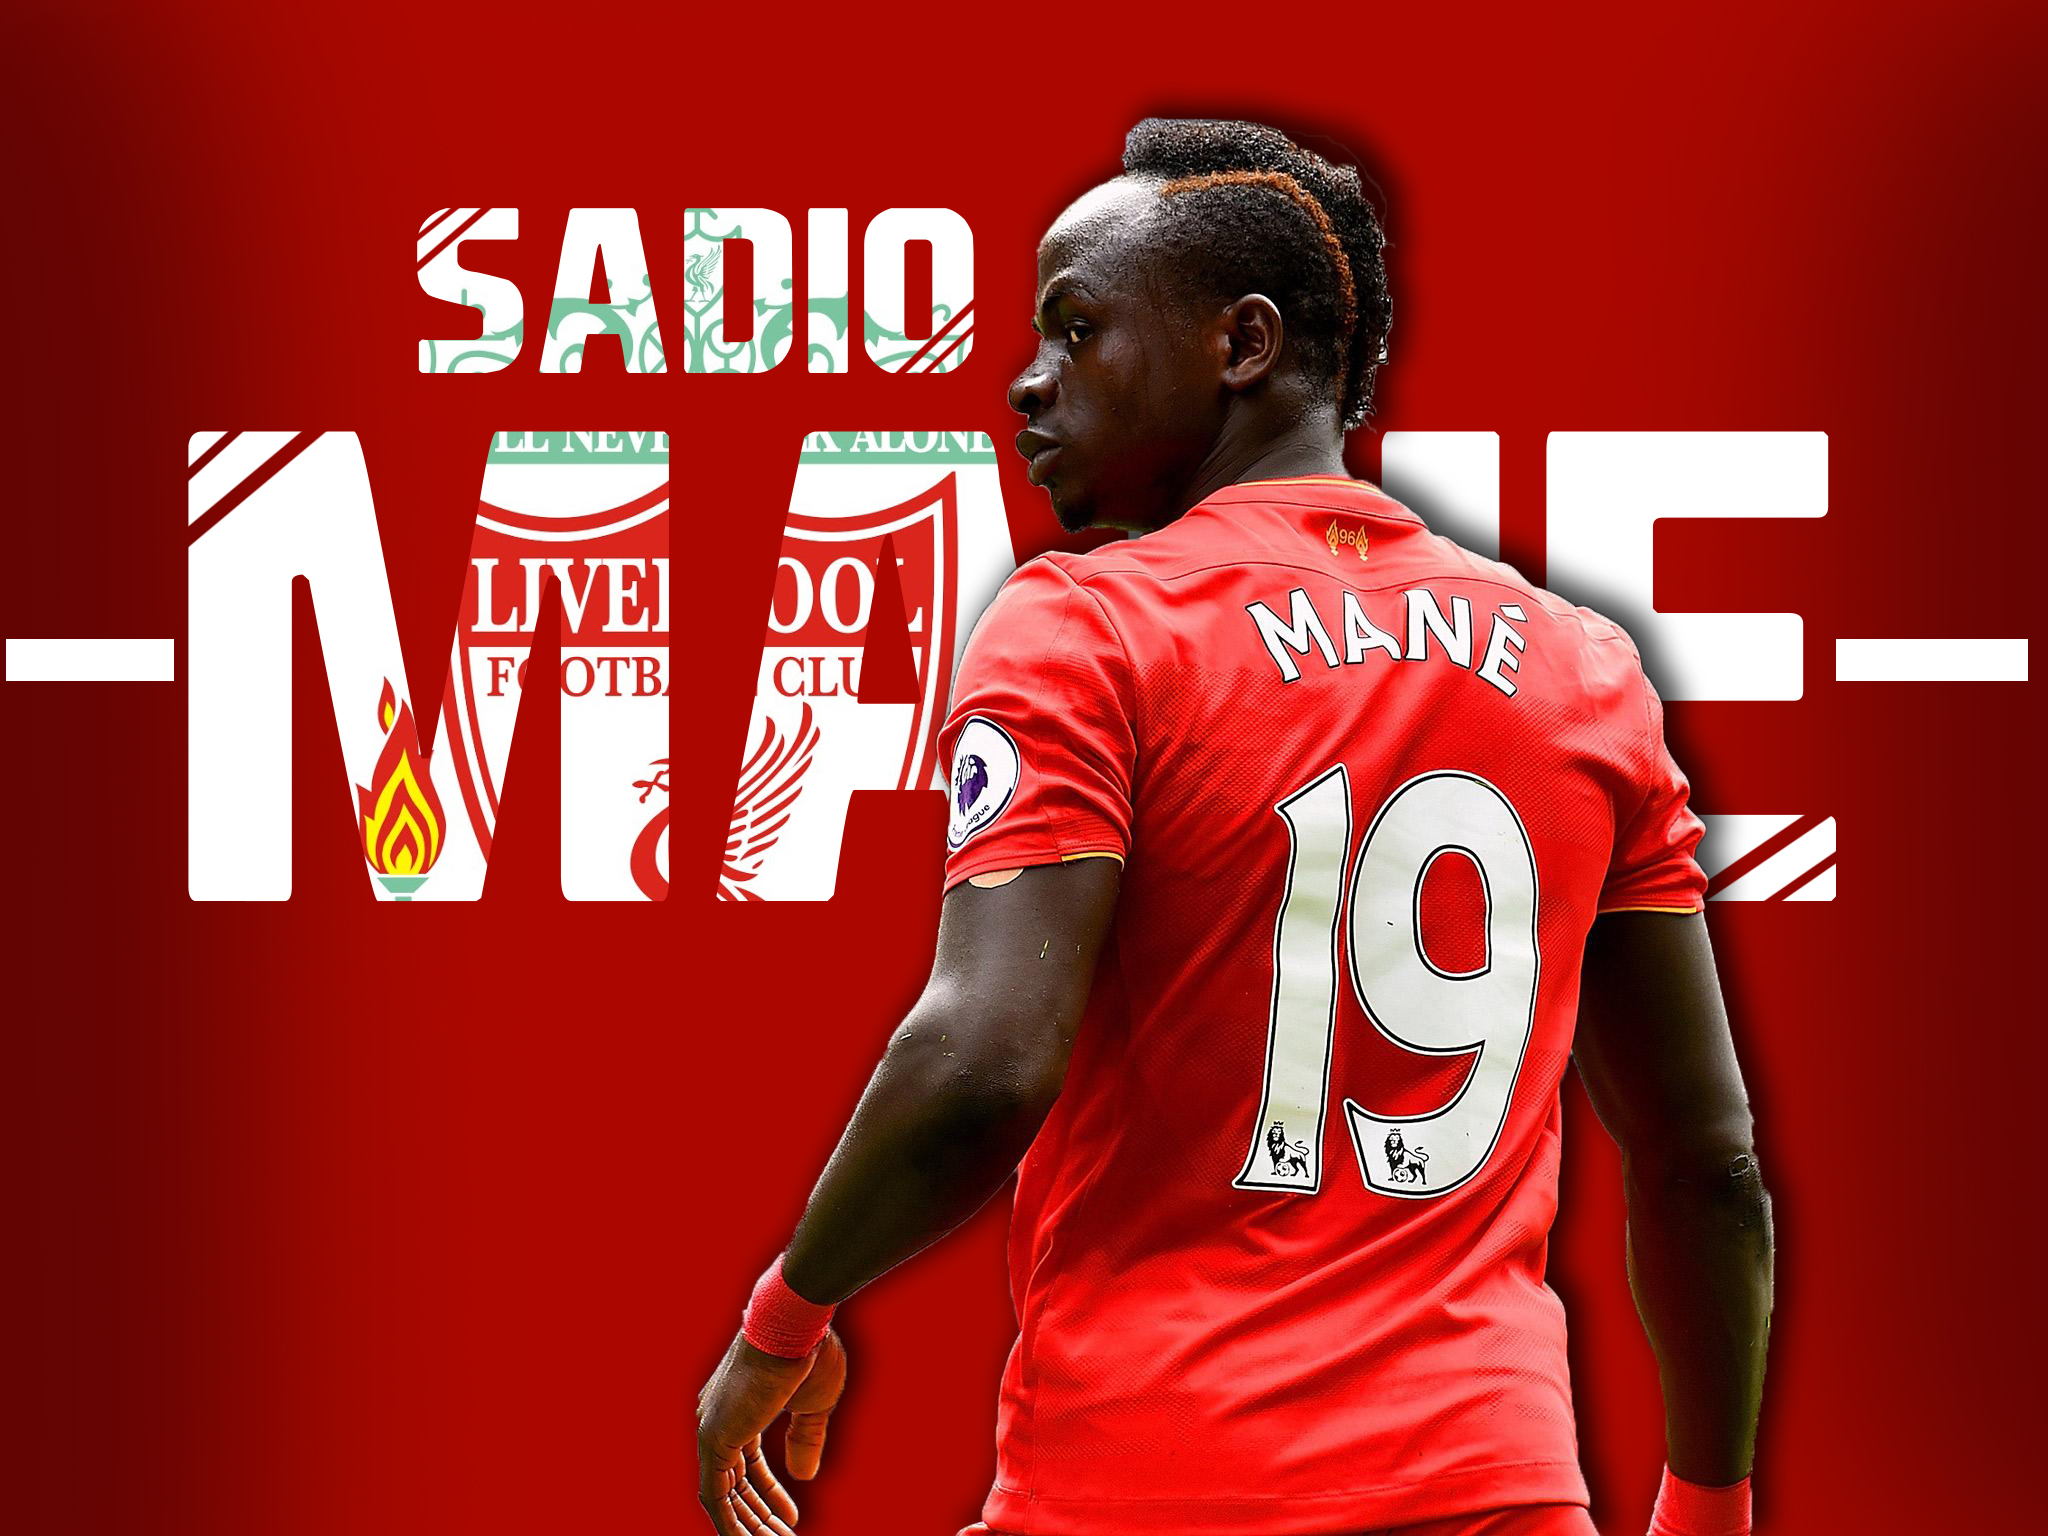 Sadio Mane by JuloCamp2608 on DeviantArt